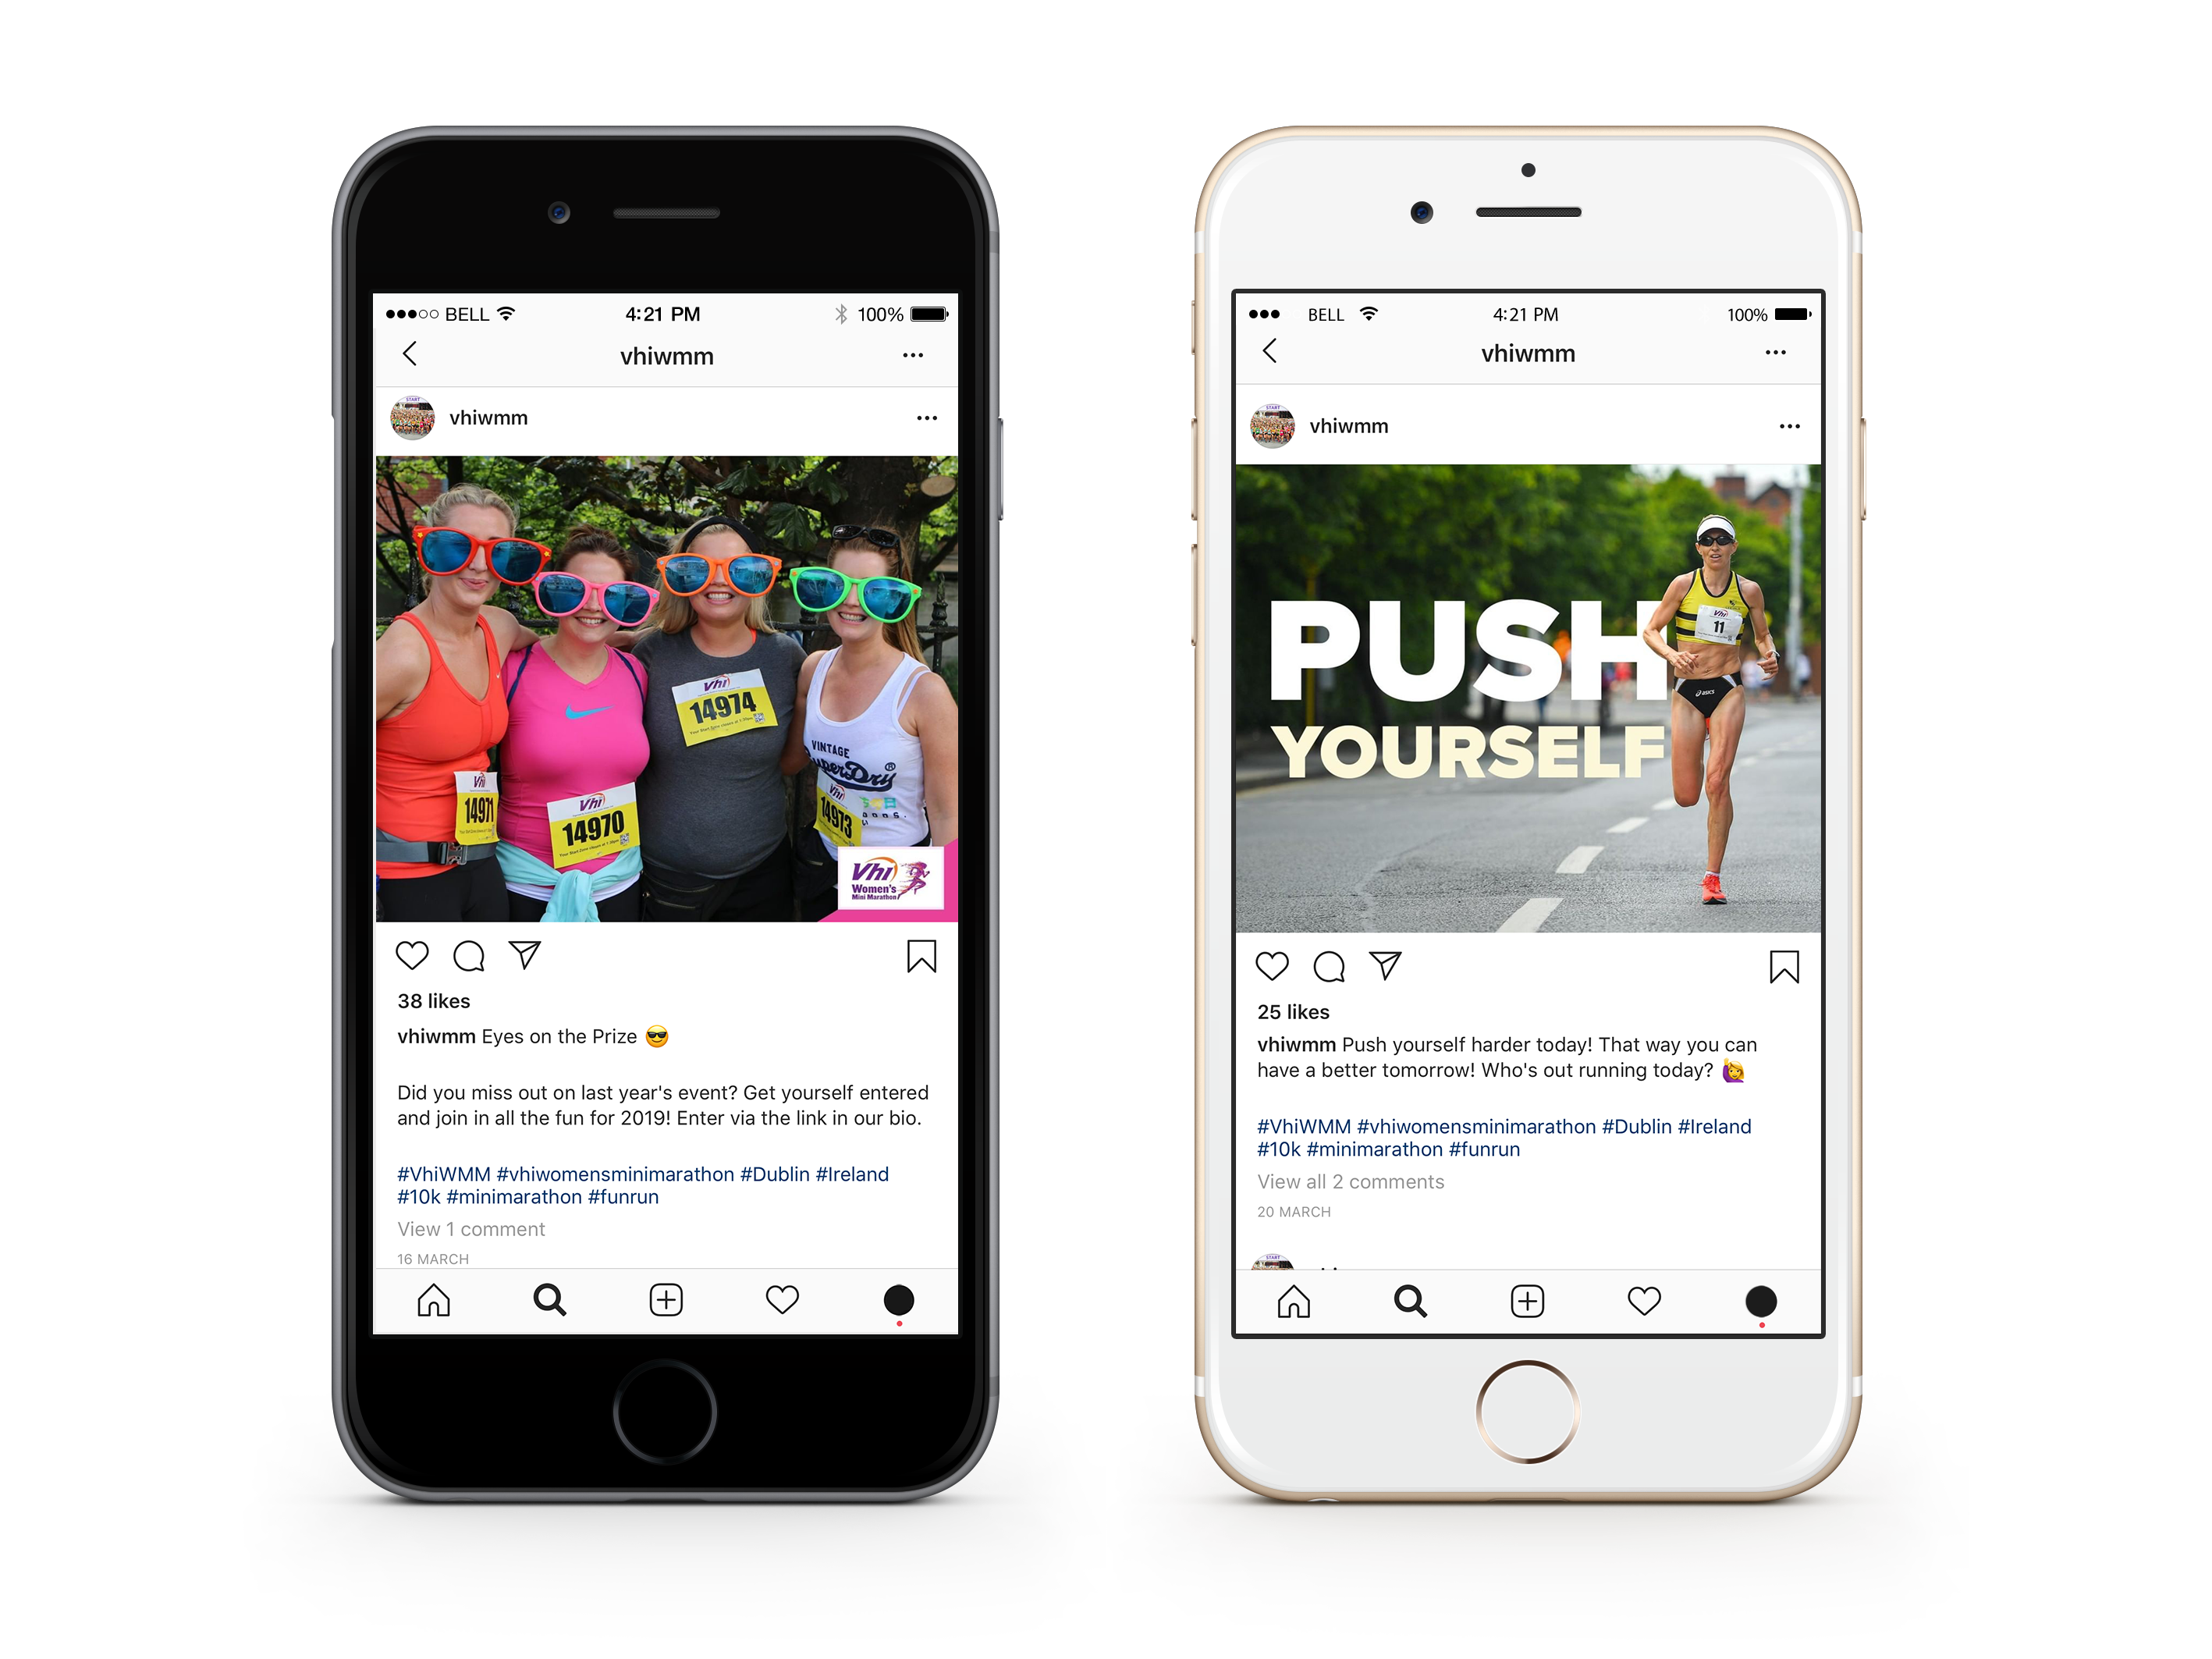 Race event Marketing: The Ultimate Guide. An image of two iPhone 8's side by side. The iPhone on the left has Instagram open with an image of 4 women wearingoversized sunglasses after completing a race event